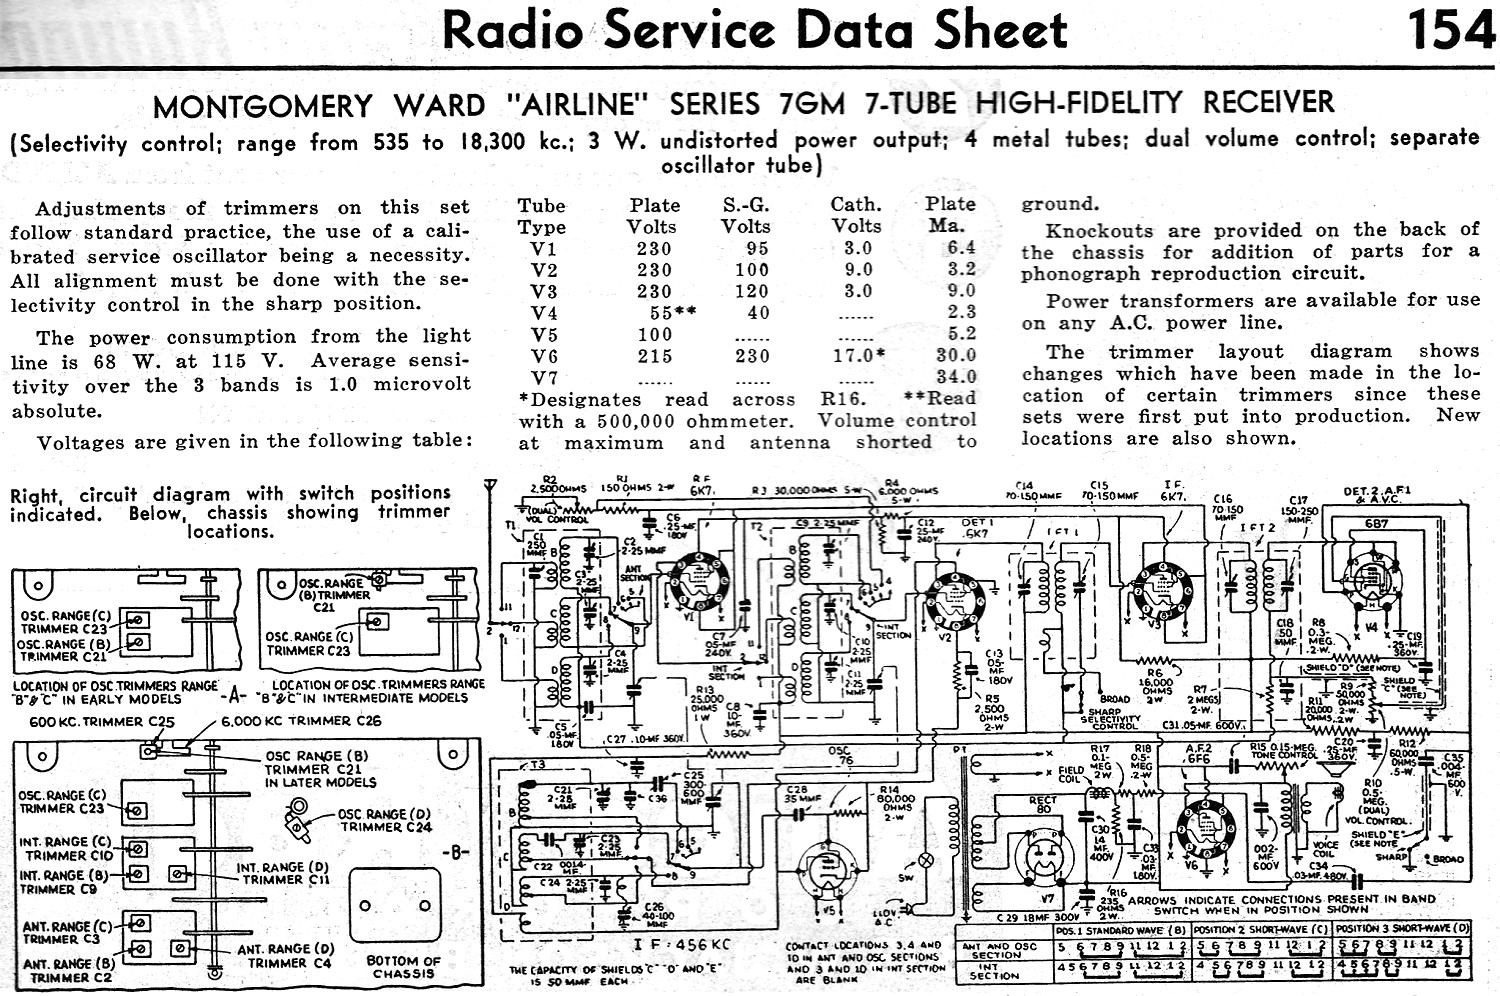 Montgomery Ward Airline Series 7gm 7 Tube High Fidelity Receiver Radio Service Data Sheet